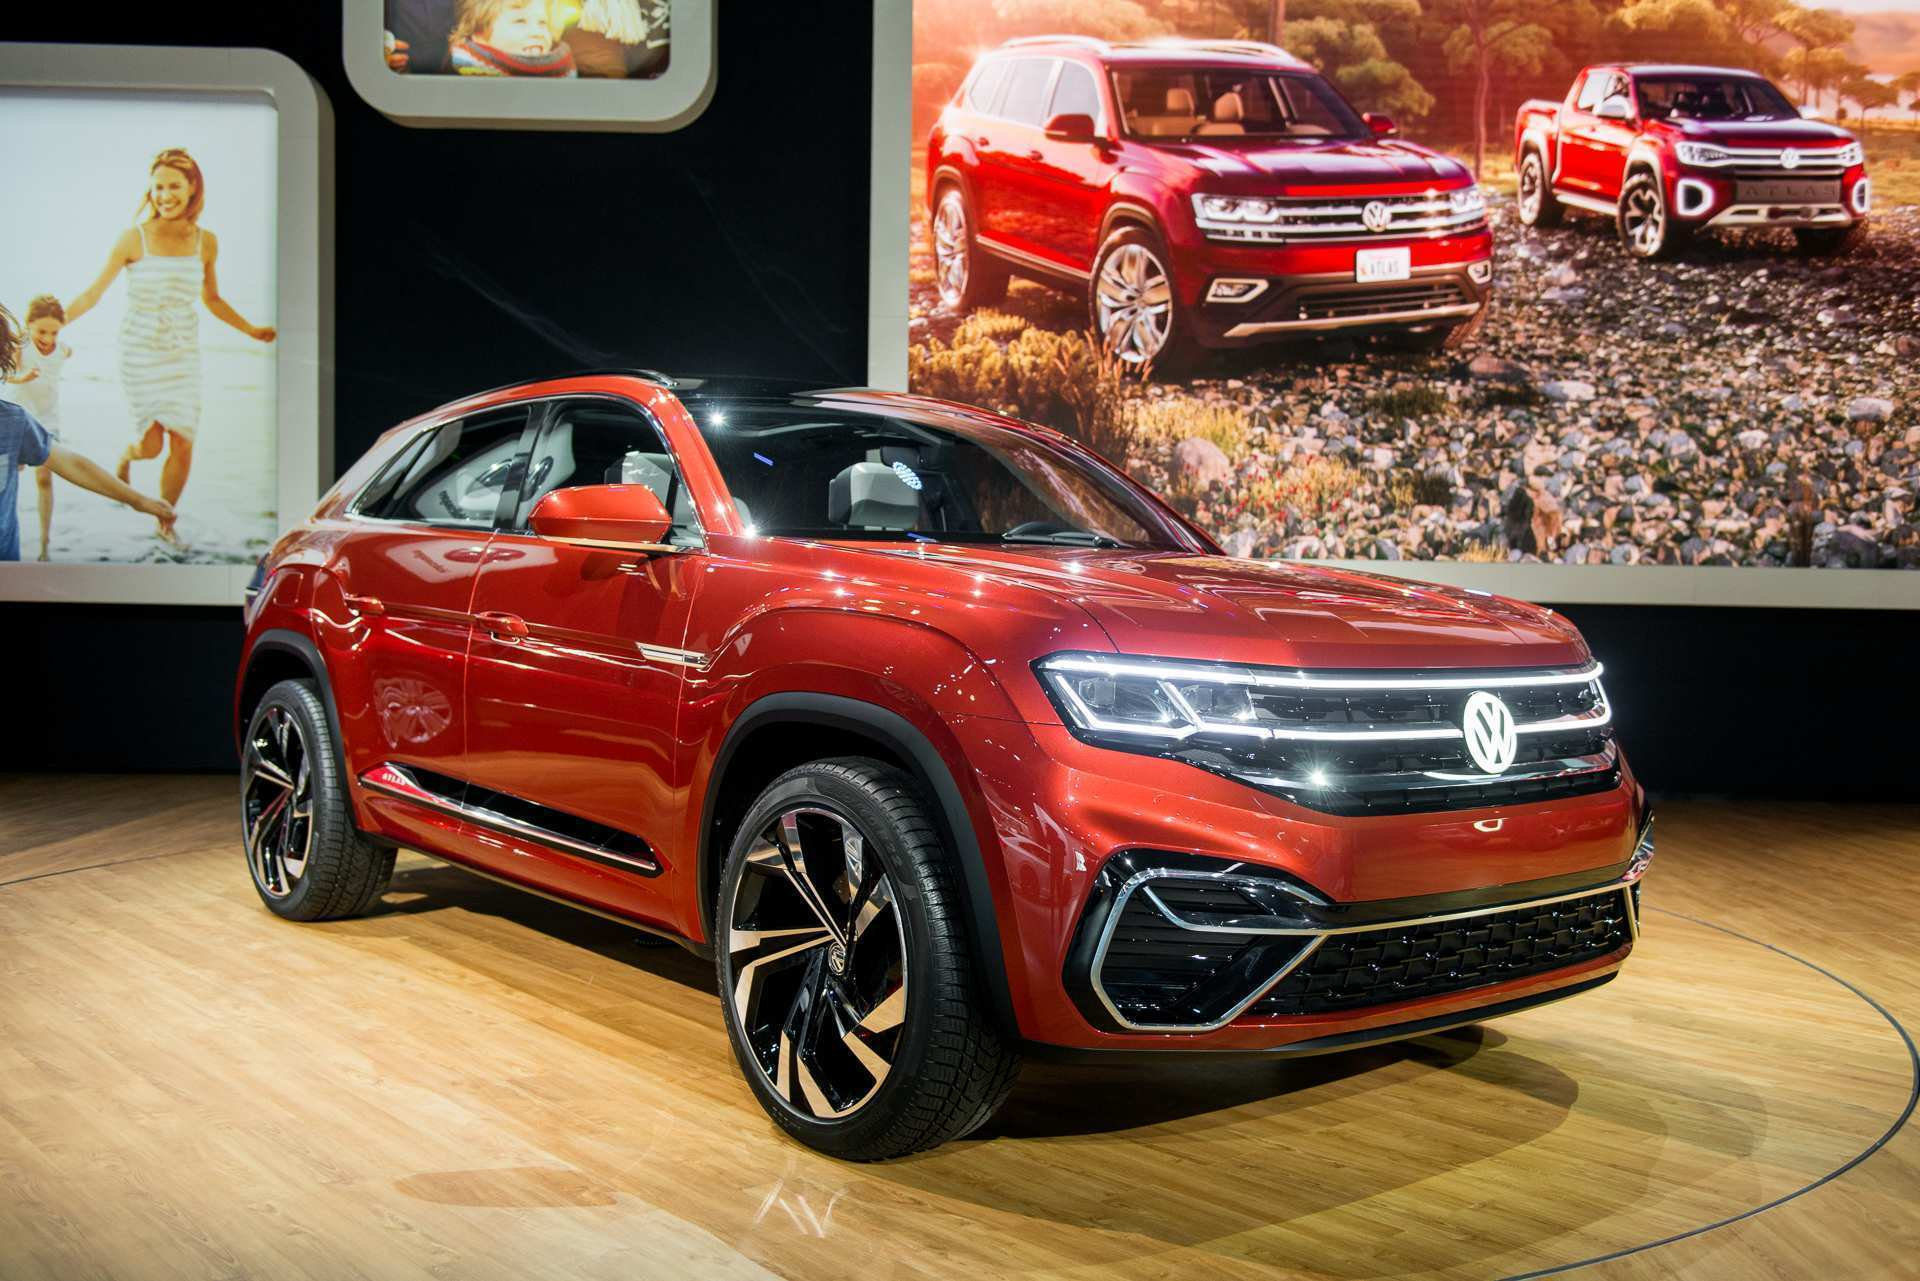 75 All New Volkswagen Hybrid 2020 Redesign And Review